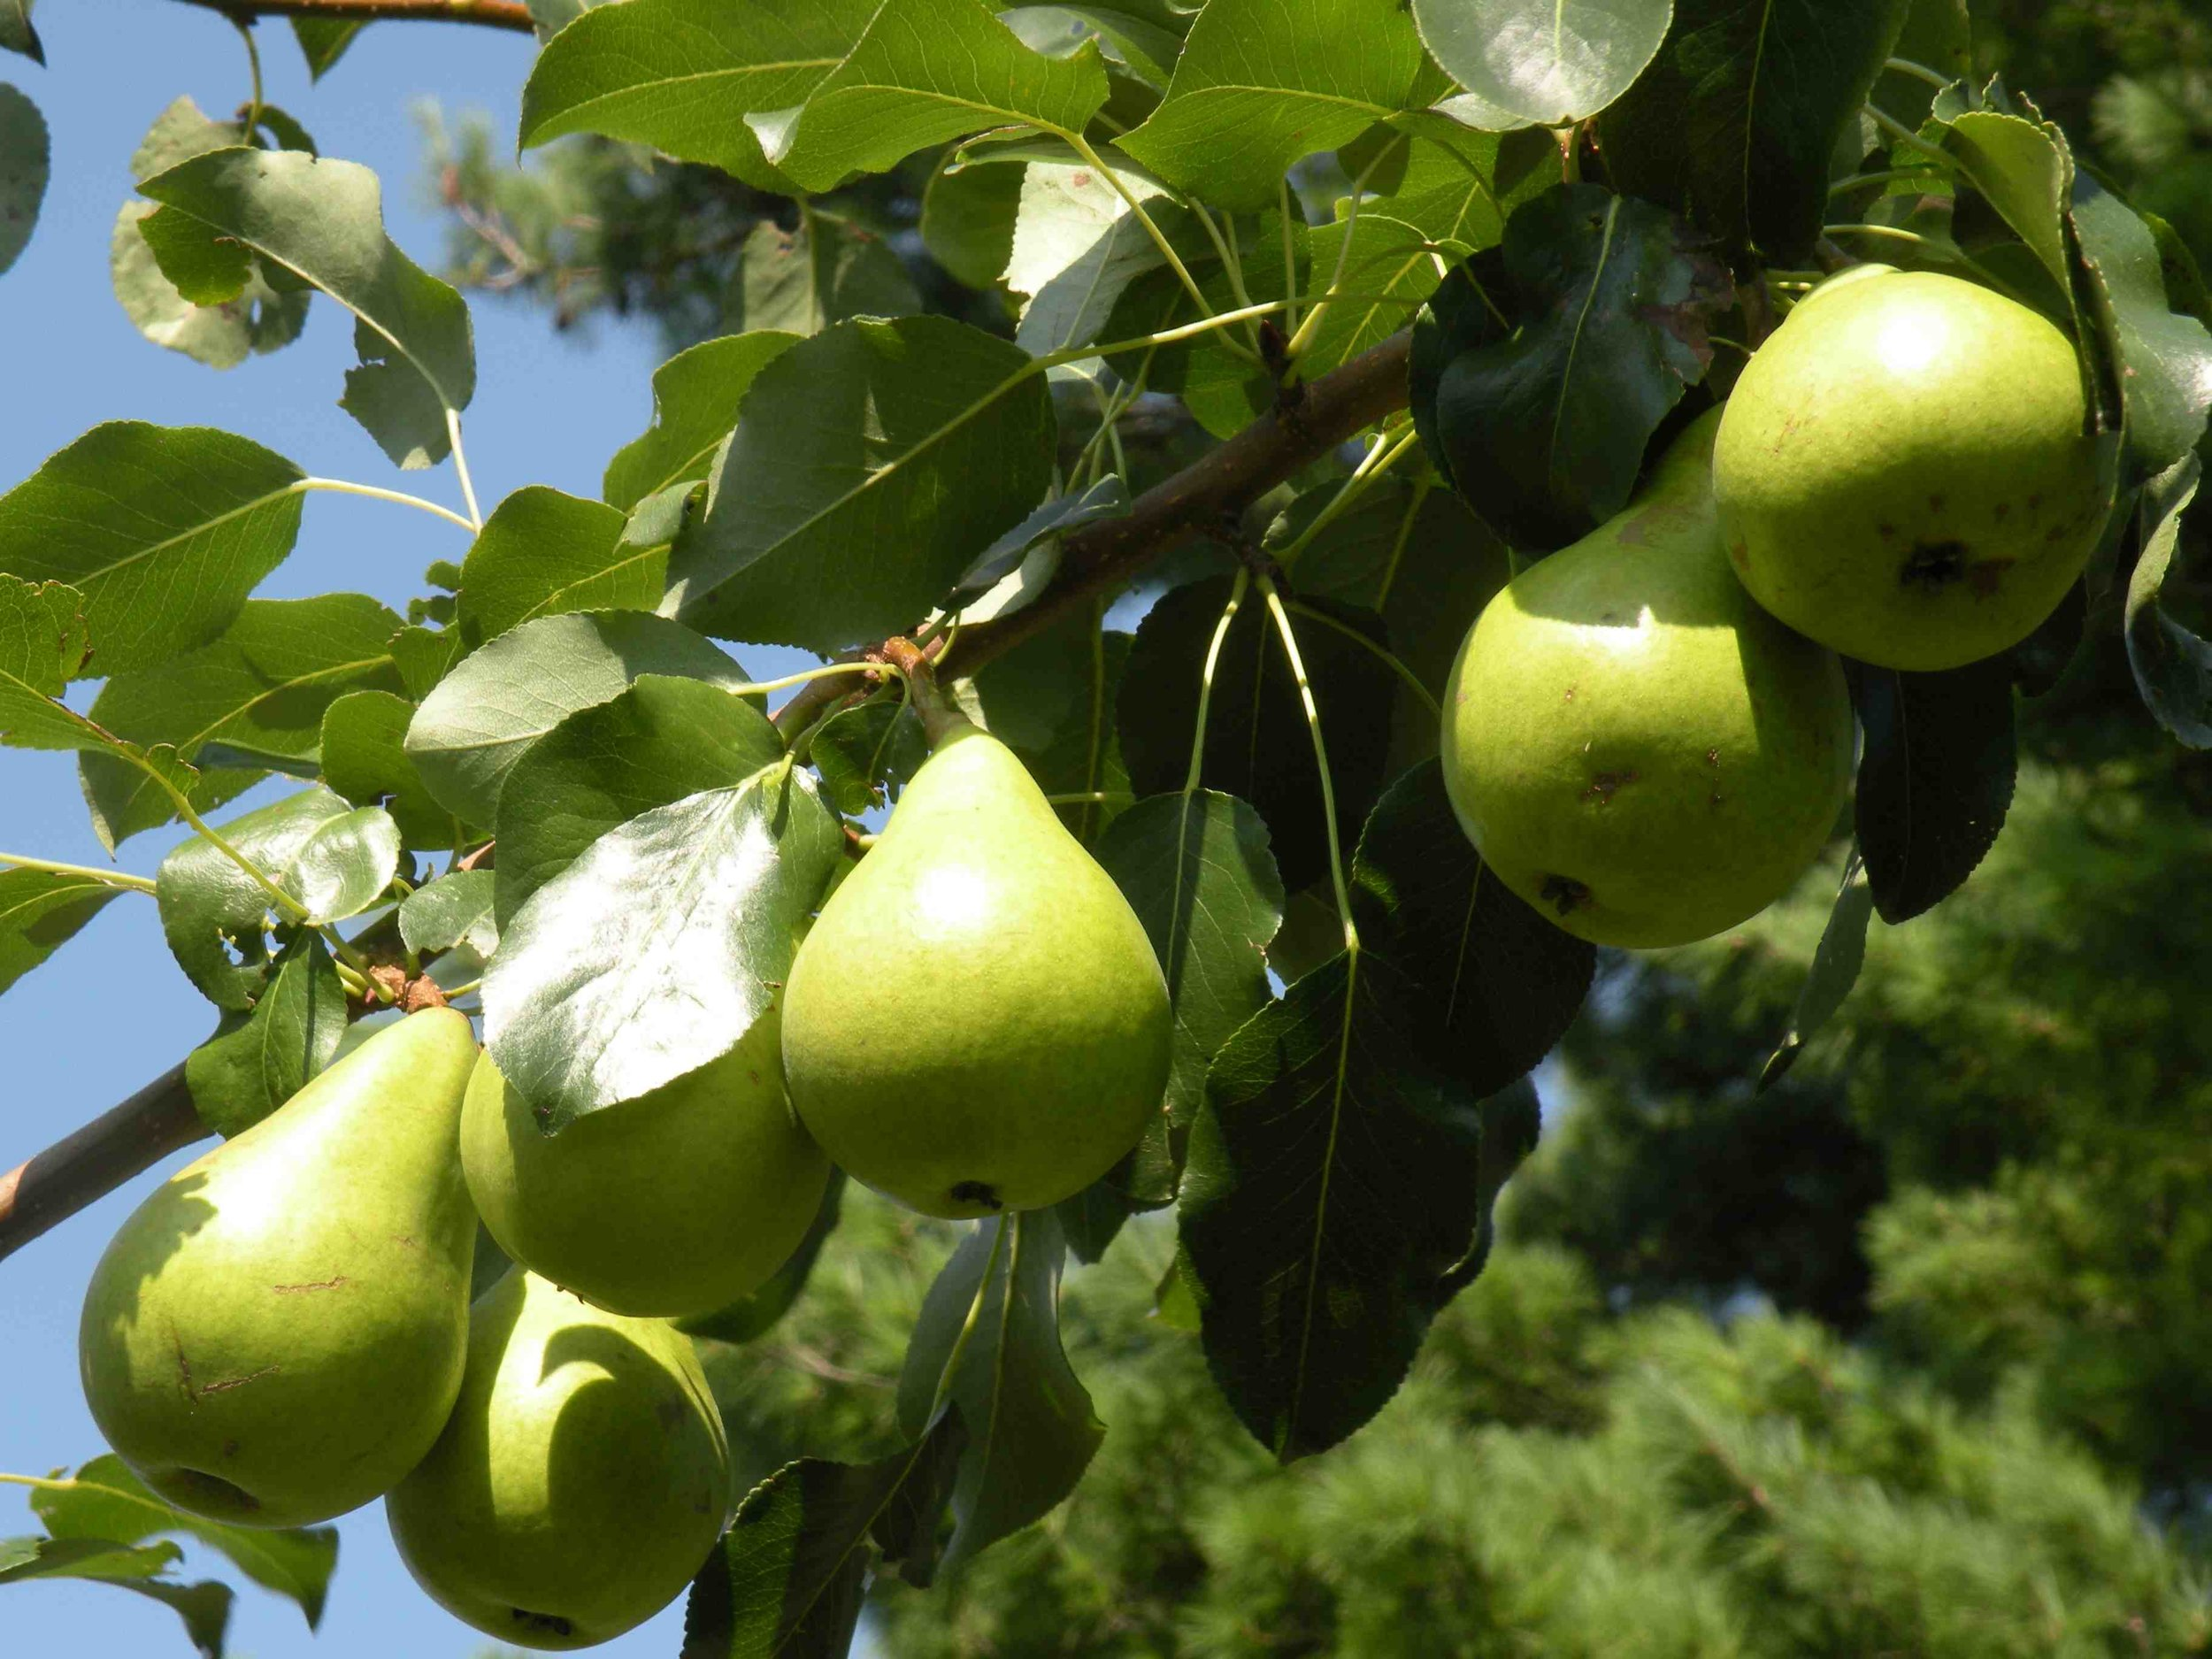 Pears ripening